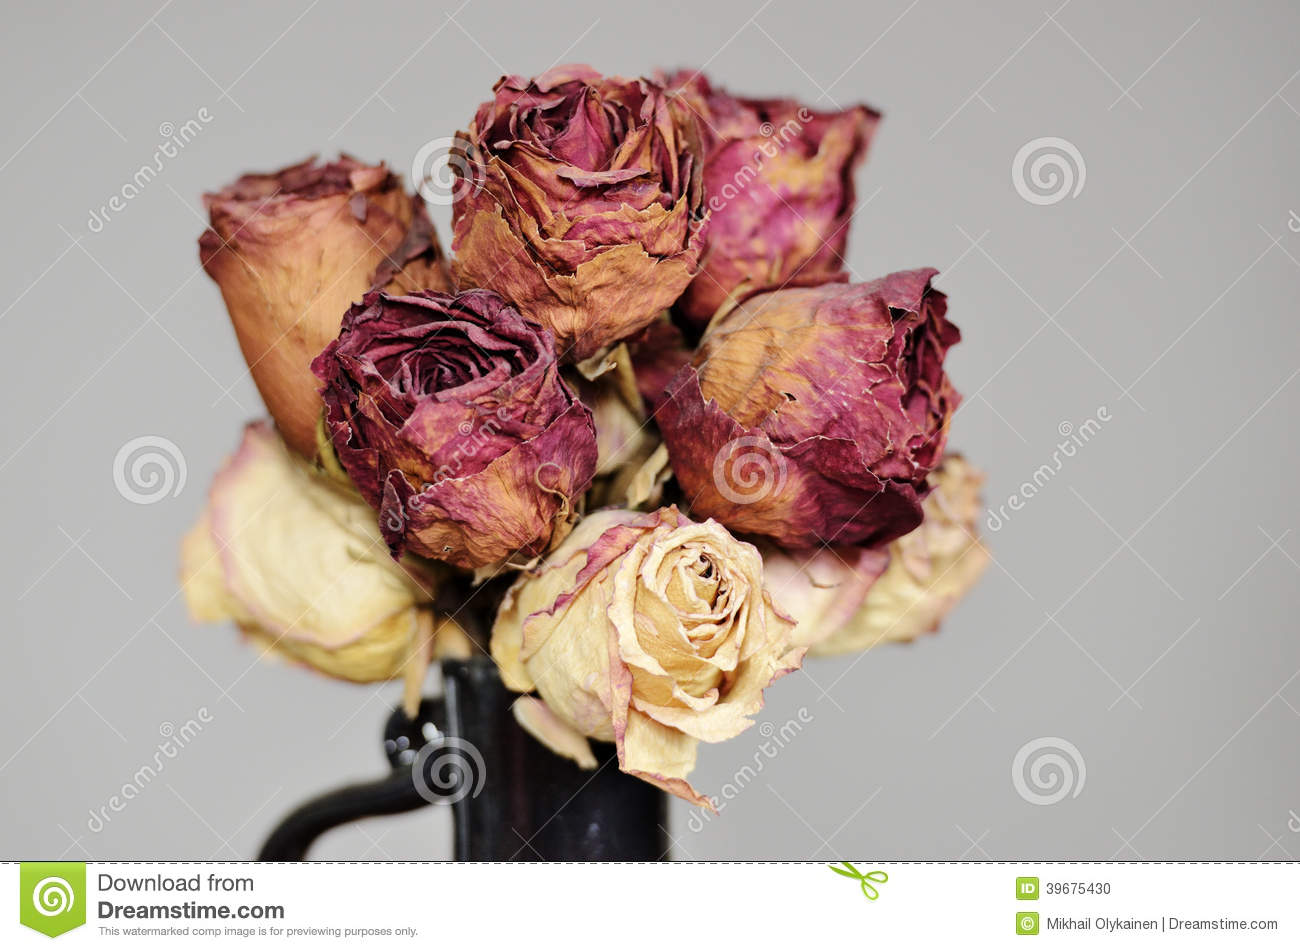 Bouquet Of Dried Roses In Ceramic Vase Stock Photo - Image of dead ...